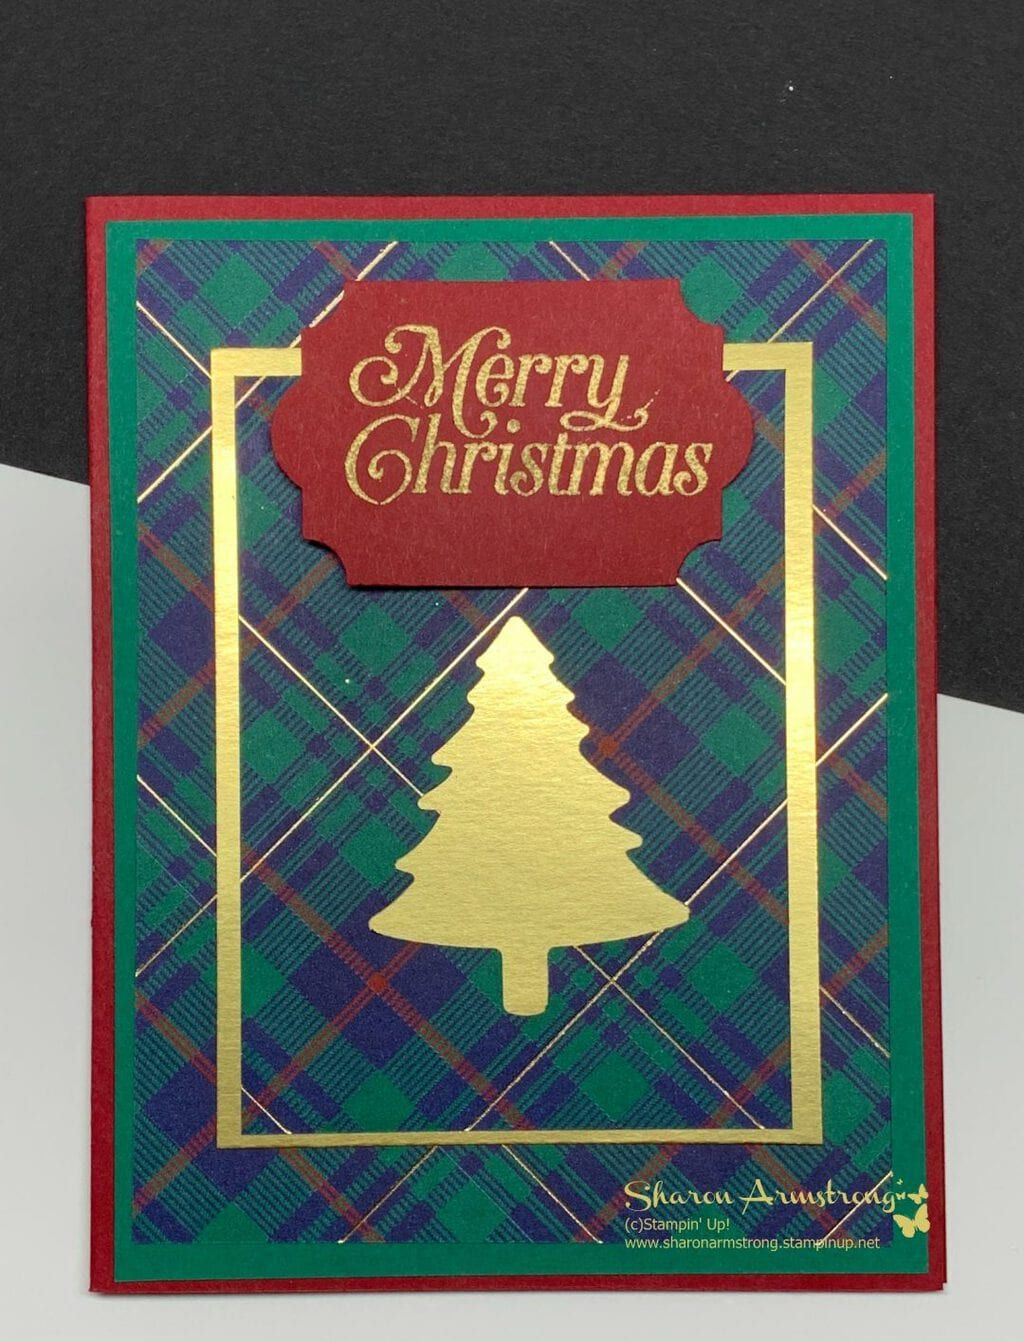 3 Christmas Card Ideas That Are Easy to Make - TX Stampin' Sharon